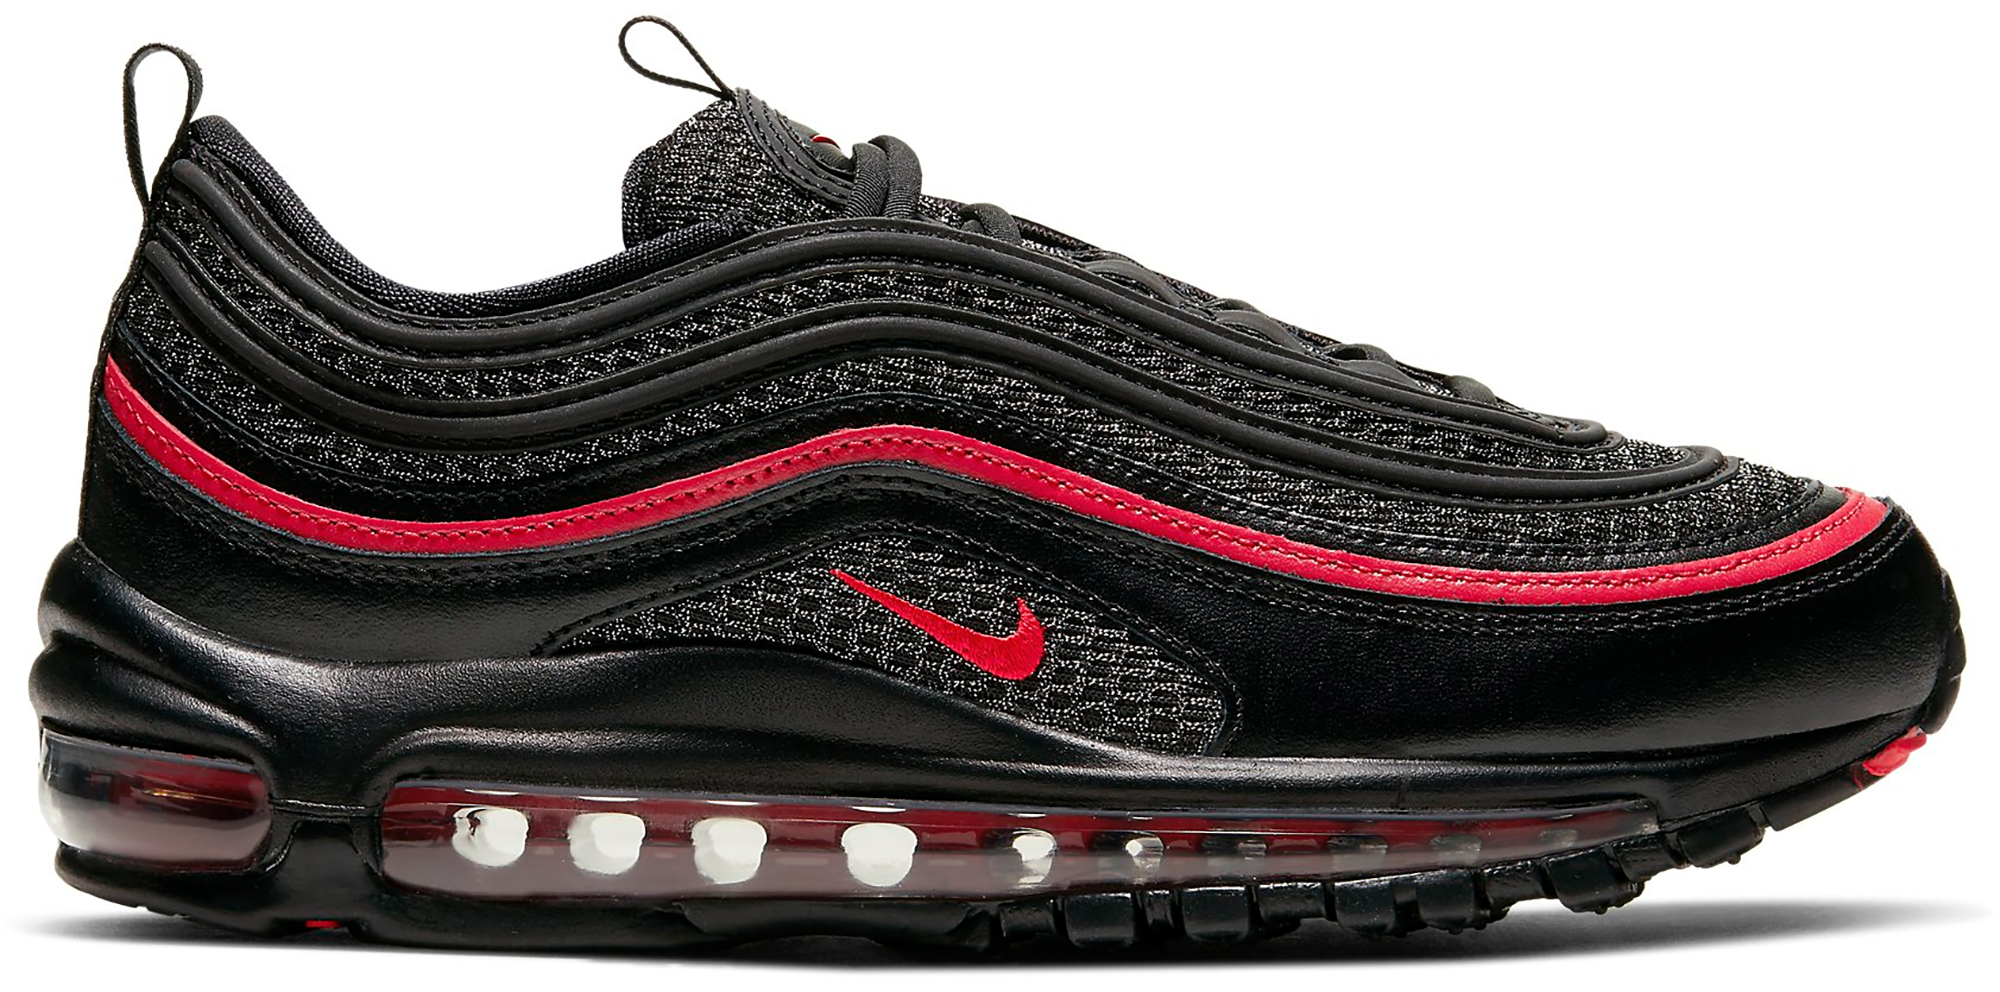 Nike Air Max 97 Valentines Day 2020 (W